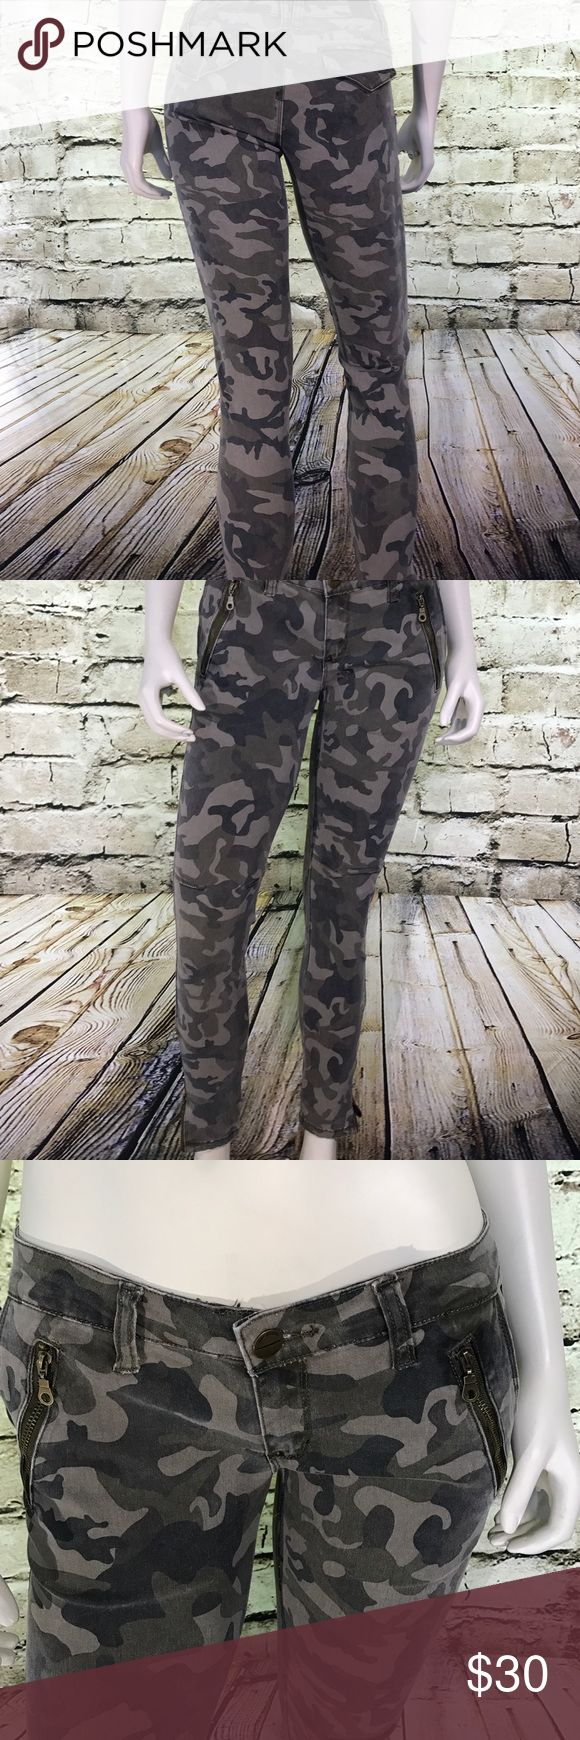 Camouflage skinny jeans Camouflage skinny jeans with zipper pockets -zipper ankles Line Denim Jeans Skinny